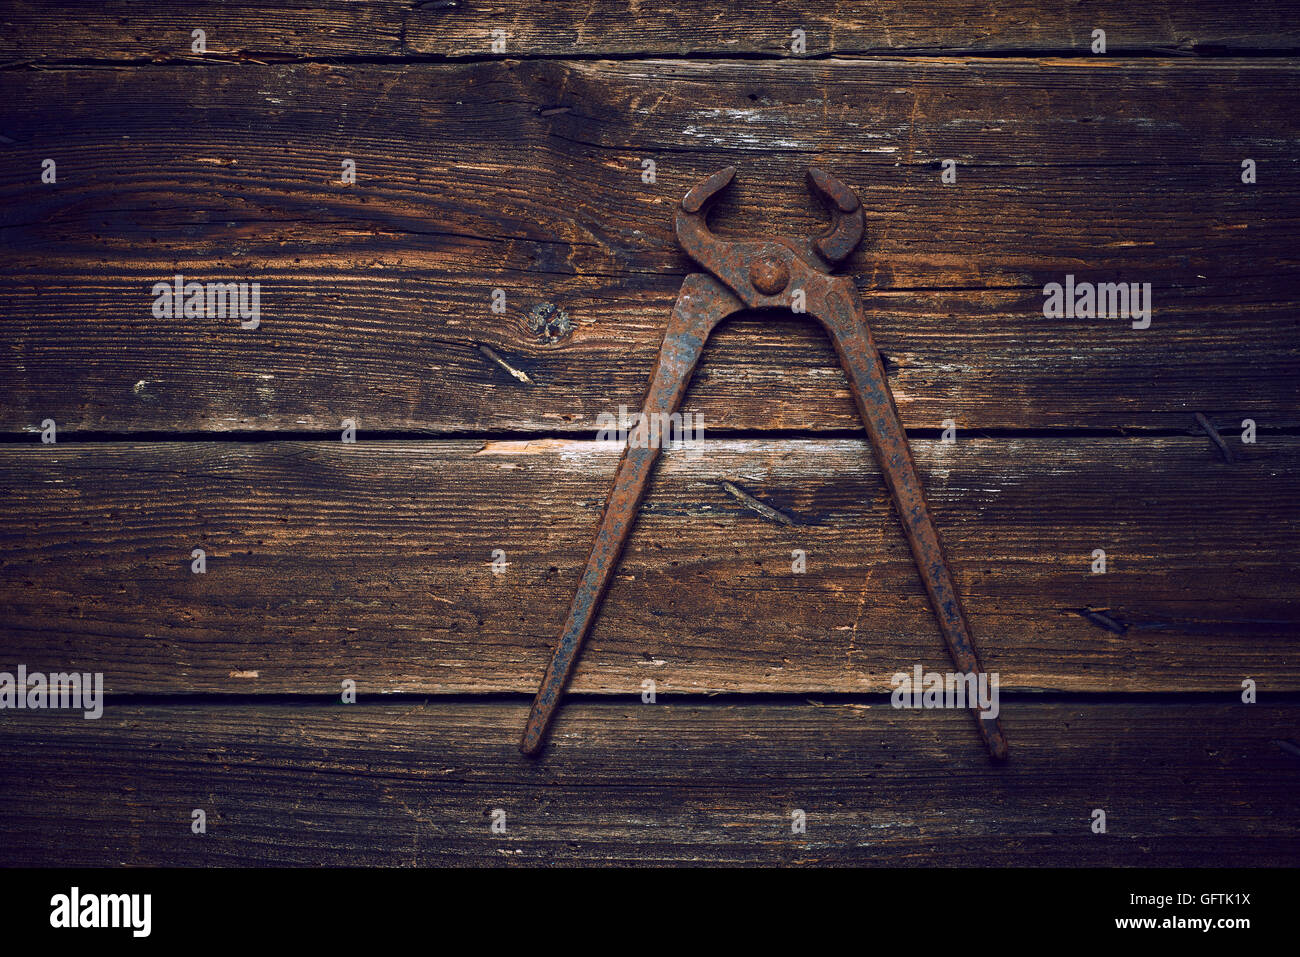 Old rusty tongs with nails on wooden boards background - Stock Image